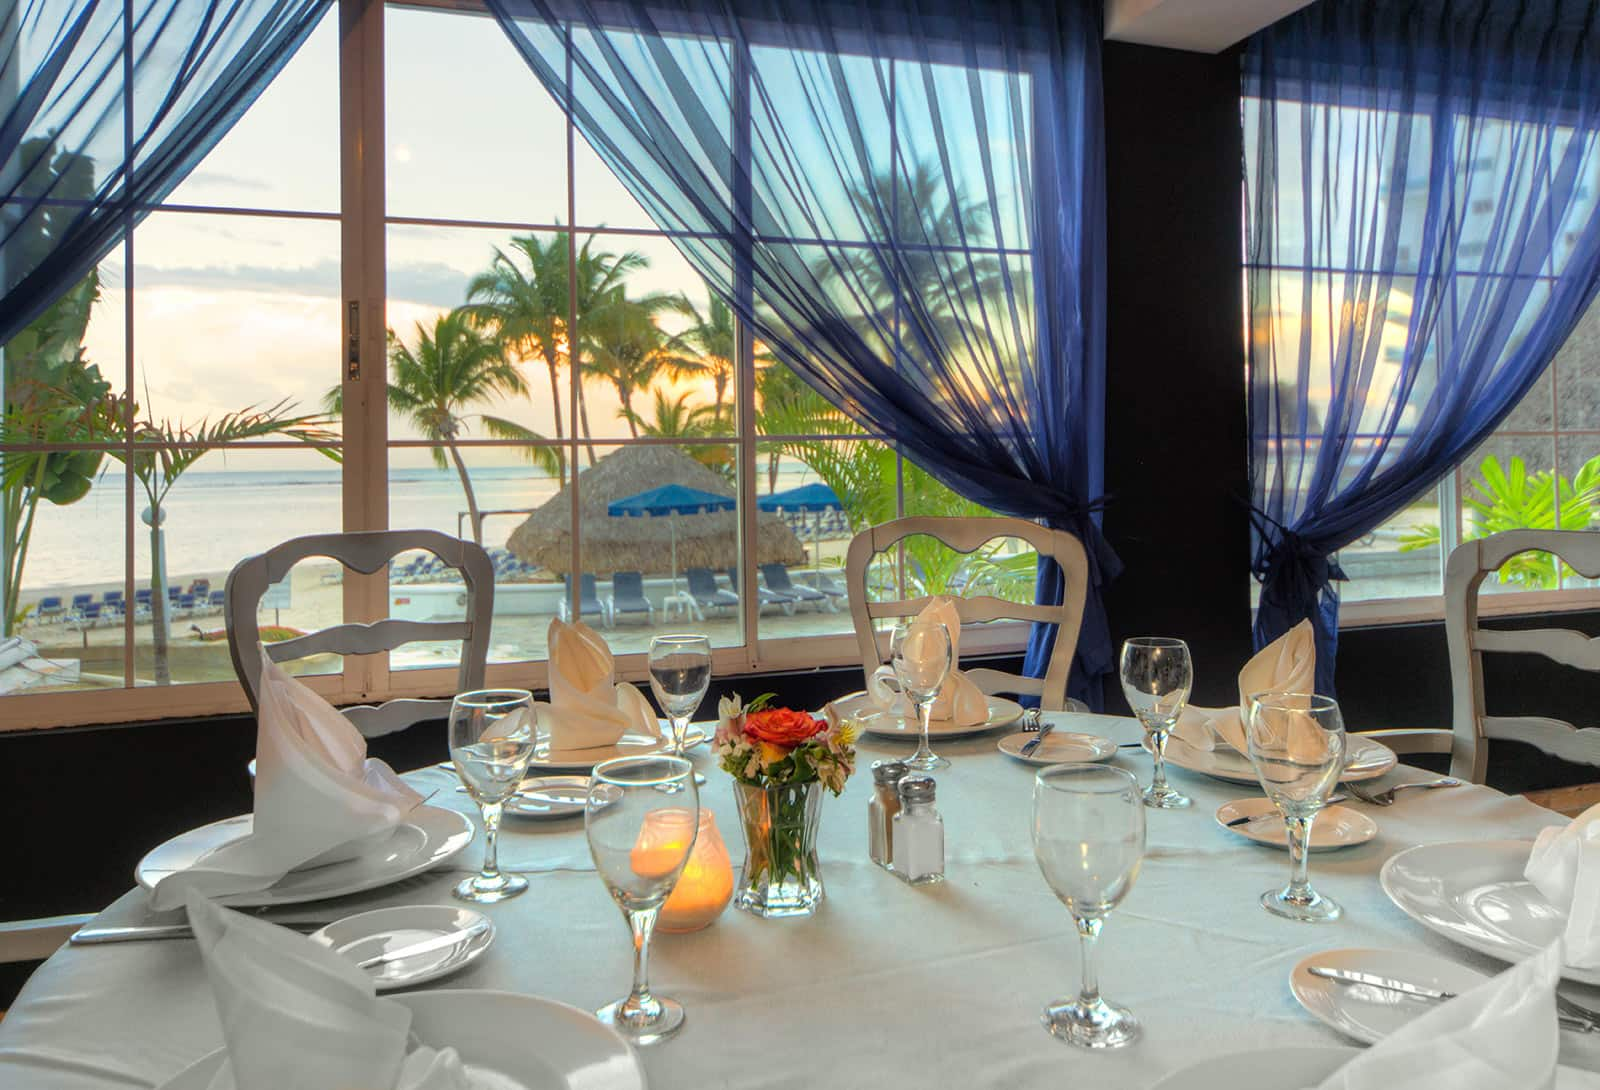 Restaurants des hotels be live experience hamaca restaurants in boca chica - Hotel be live hamaca boca chica ...